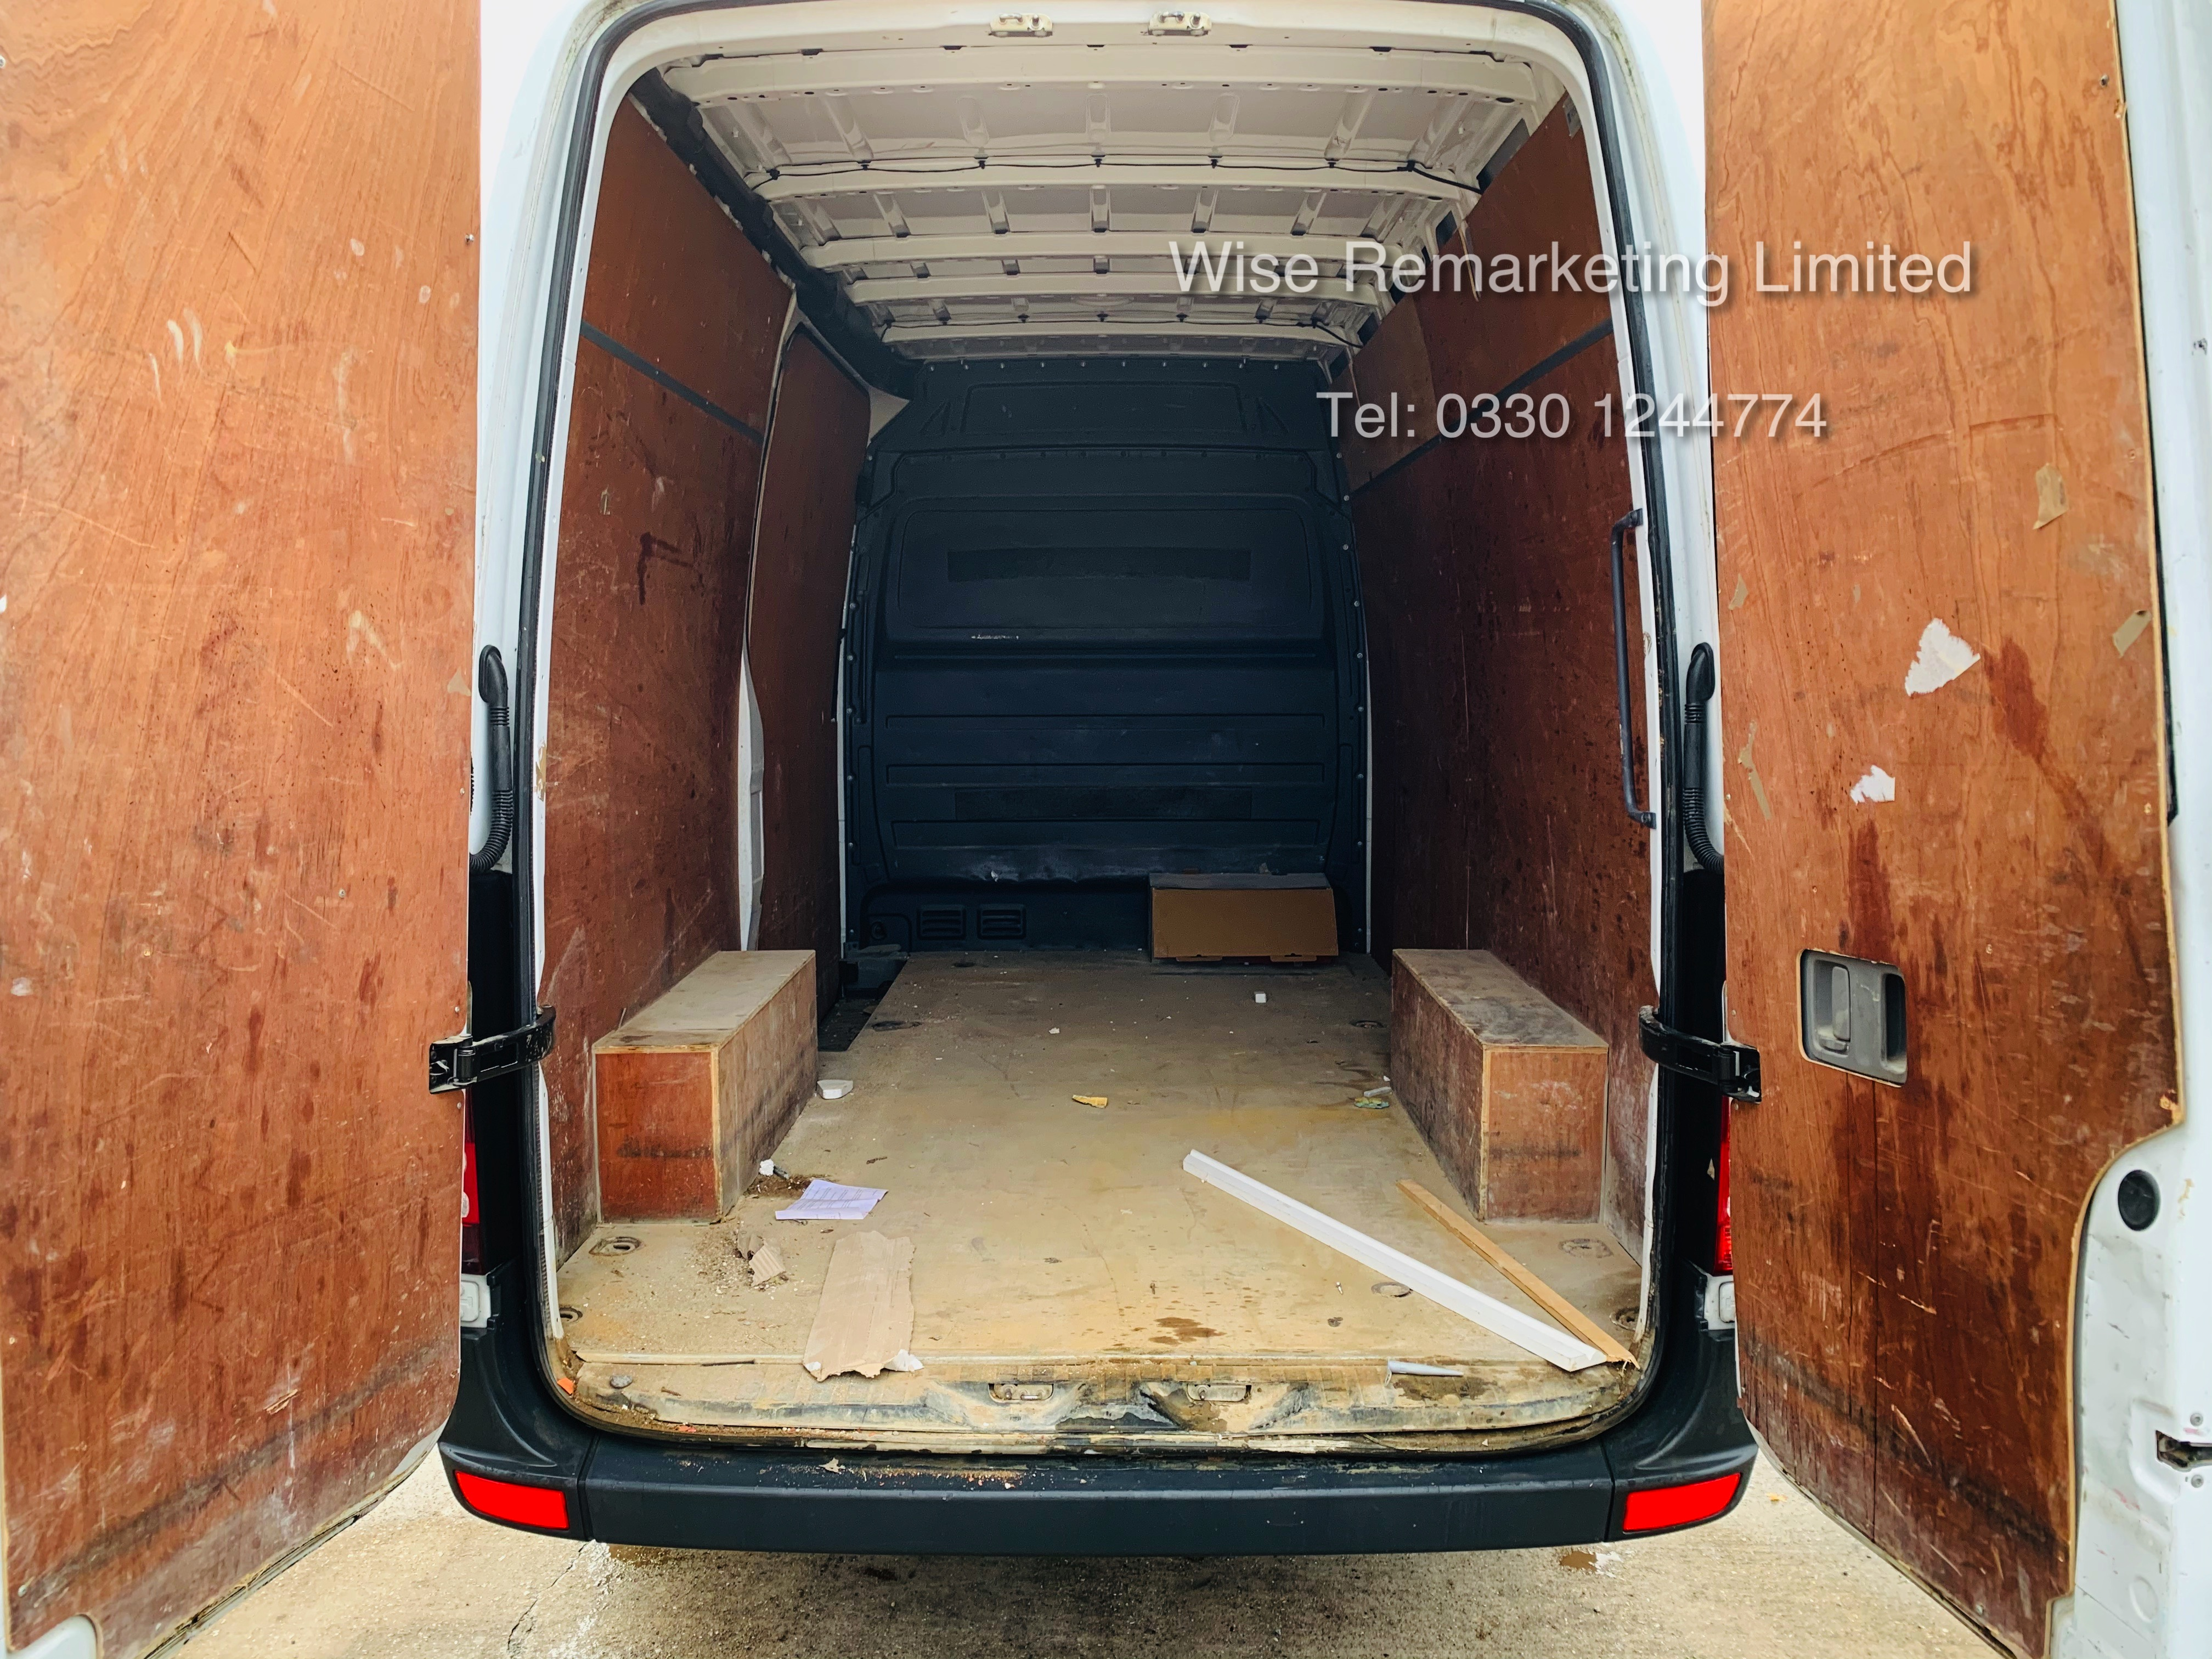 *Reserve Met* Mercedes Sprinter 313 CDI 2.1TD - 2015 15 Reg - Company Maintained - Low Miles - Image 9 of 16